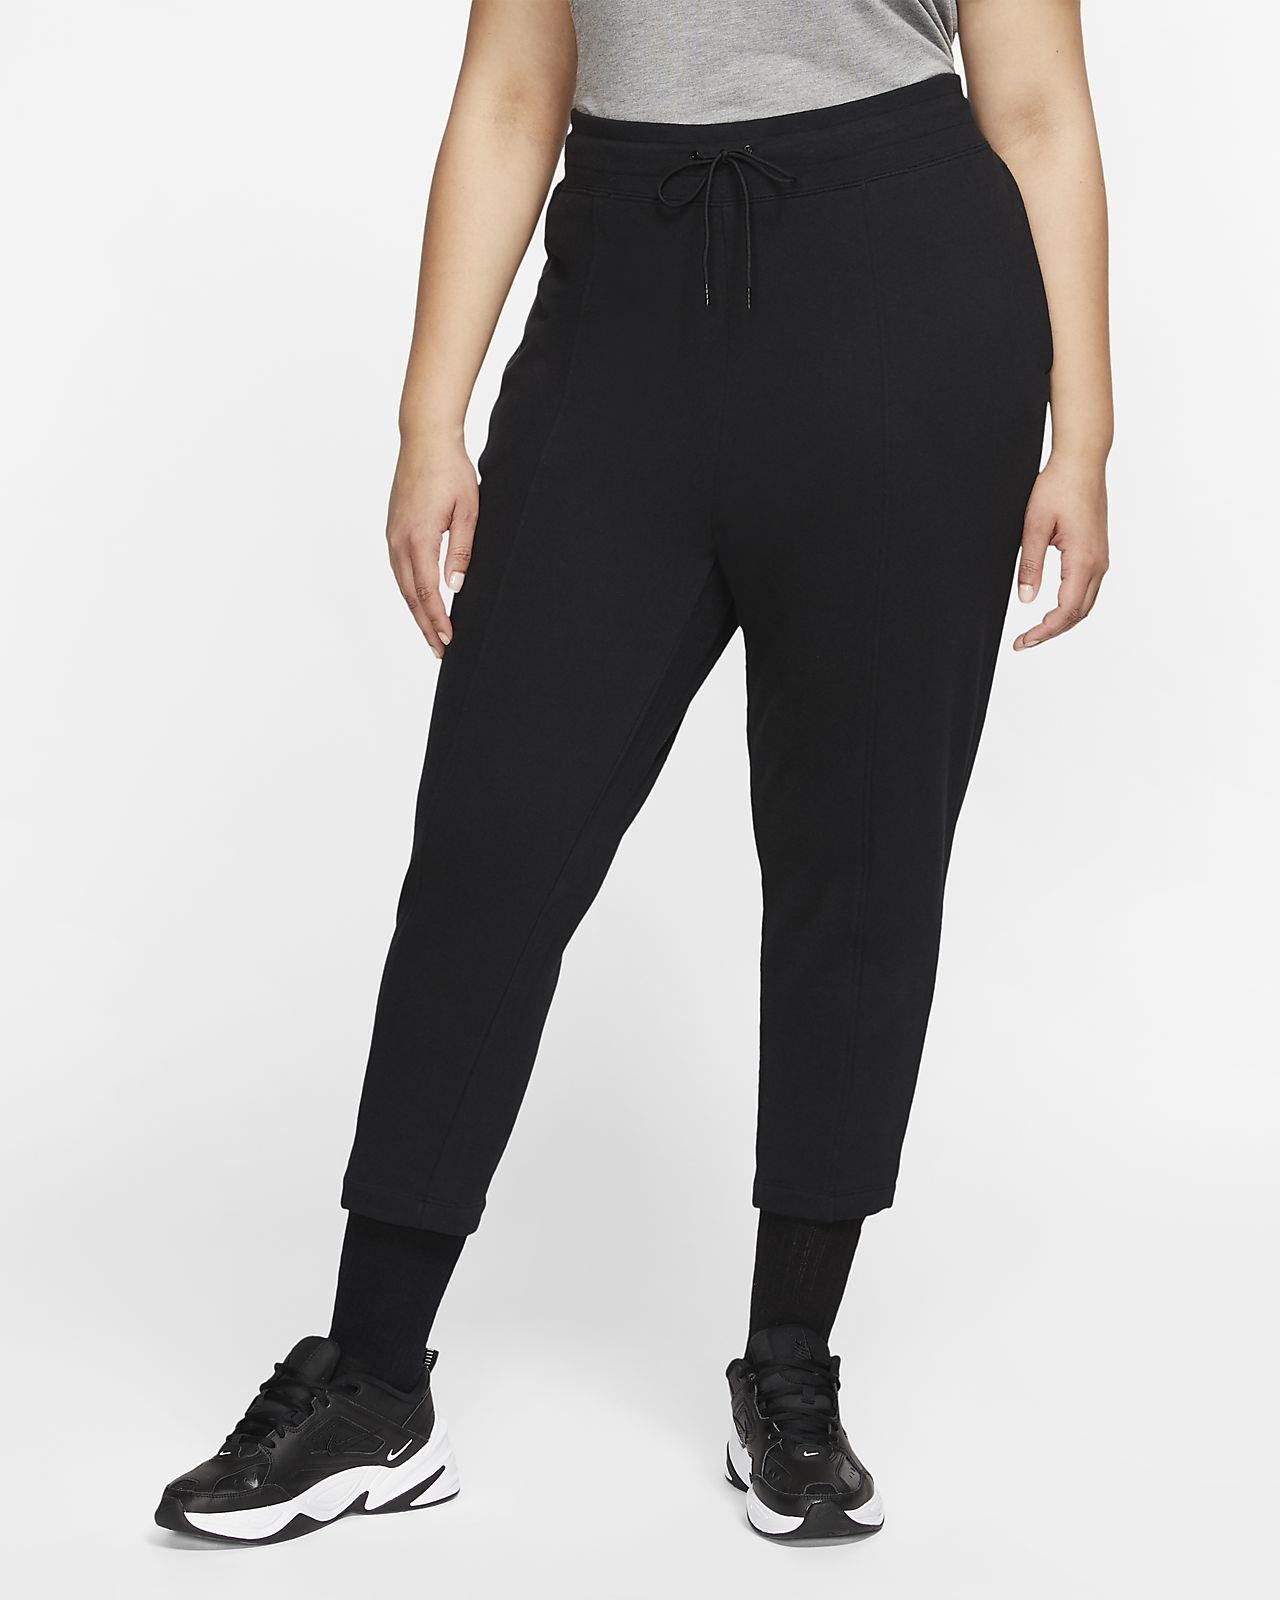 Nike Sportswear Swoosh Women's French Terry Trousers (Plus Size)